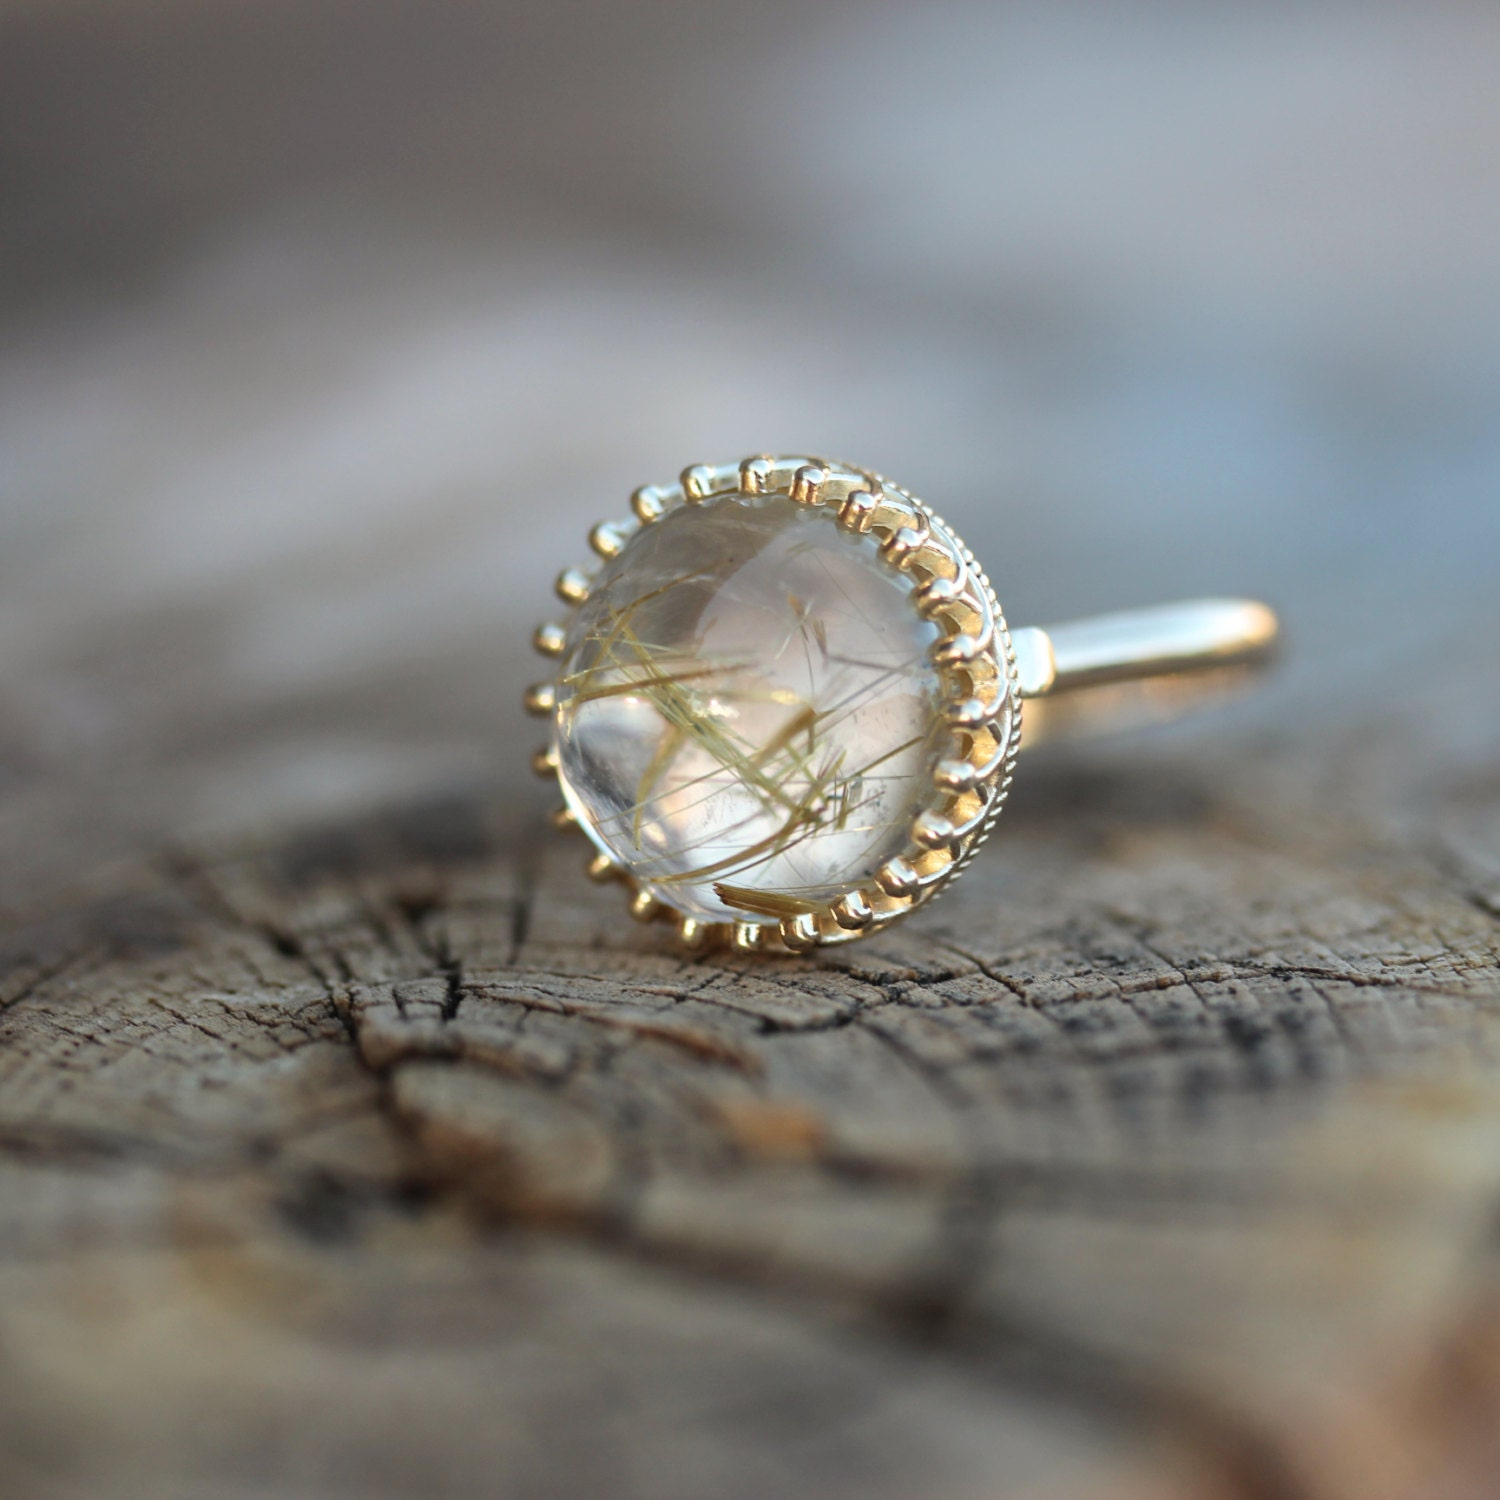 Golden Rutilated Quartz Engagement Ring Crown Princess. Infinity Symbol Wedding Rings. Sky Blue Topaz Engagement Rings. Real Pearl Stud Earrings. Silk Necklace. High School Graduation Rings. Silver Coin Necklace. Womens Gold Anklets. Lapis Lazuli Wedding Rings